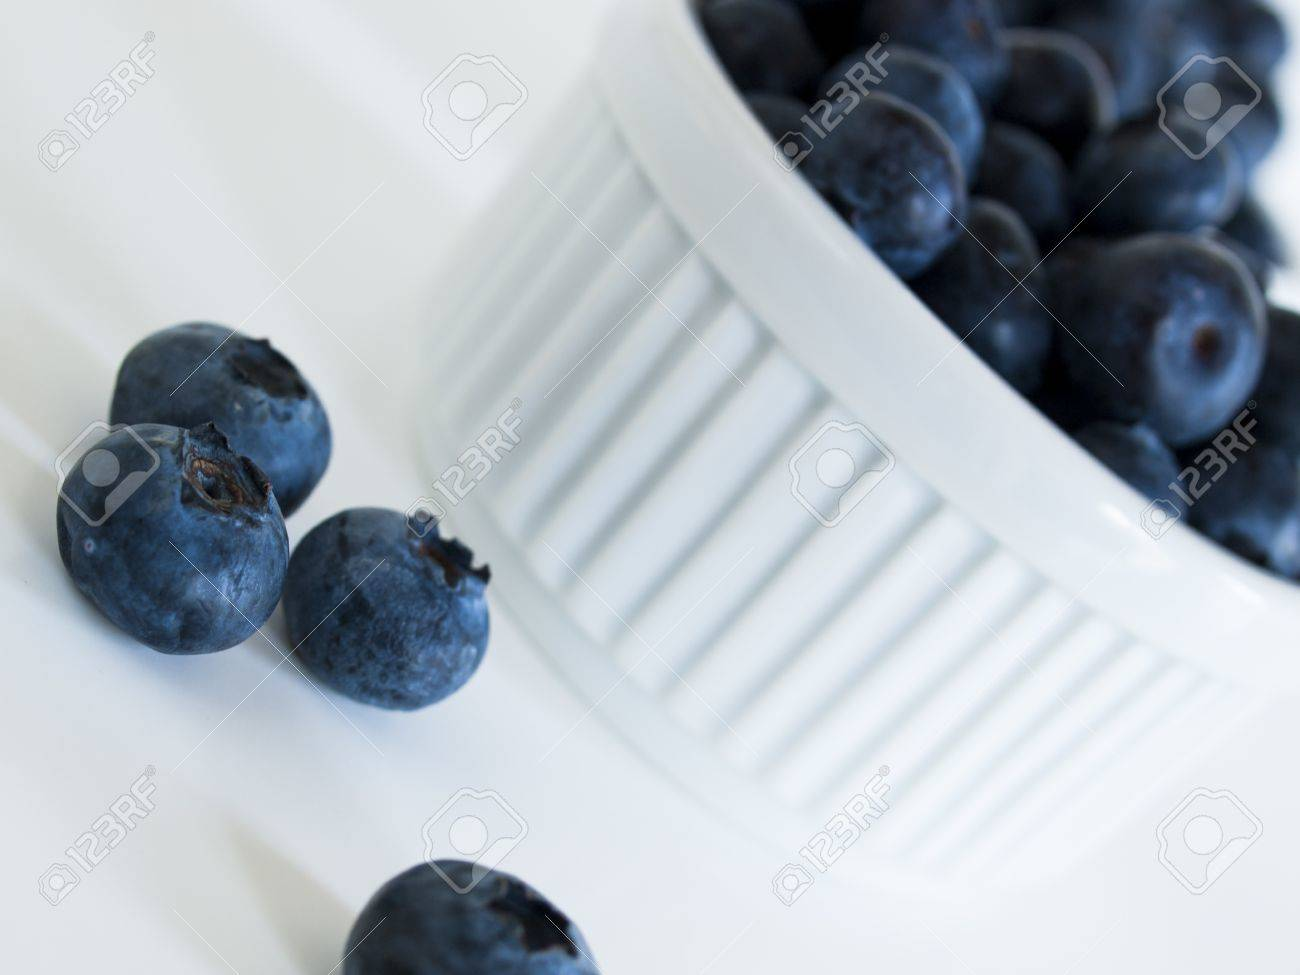 Fresh bluberries from local market on white background. Blueberries contain anthocyanins,  and various phytochemicals, which possibly have a role in reducing risks of some diseases. Stock Photo - 13695119